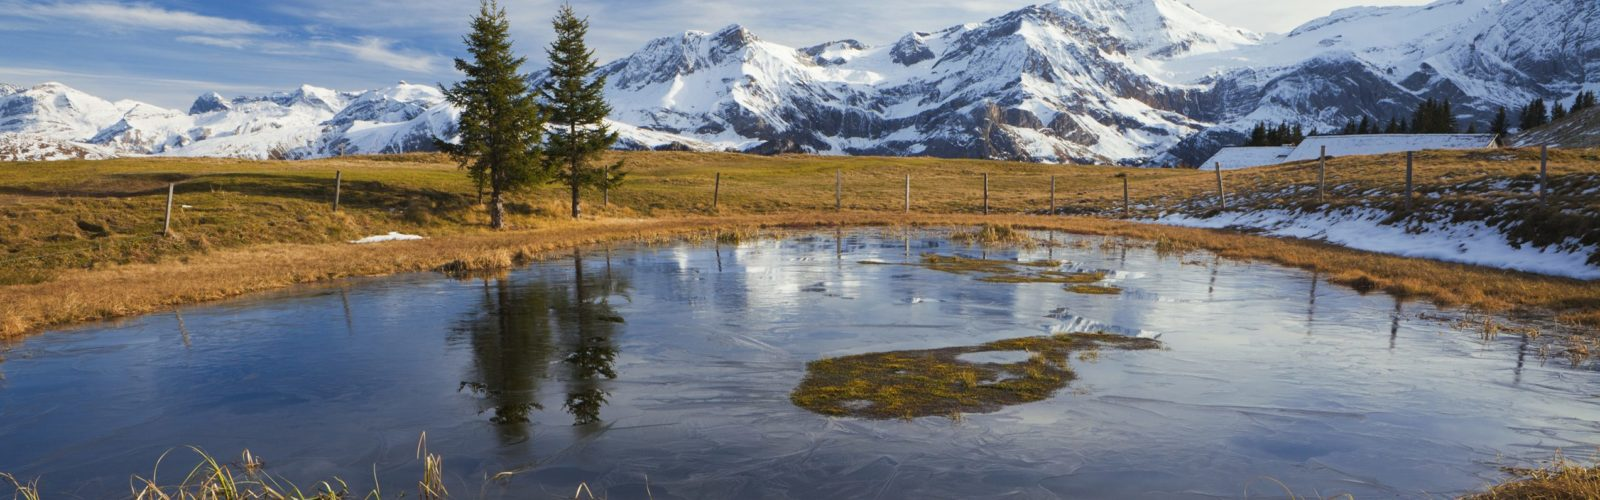 gstaad-lake